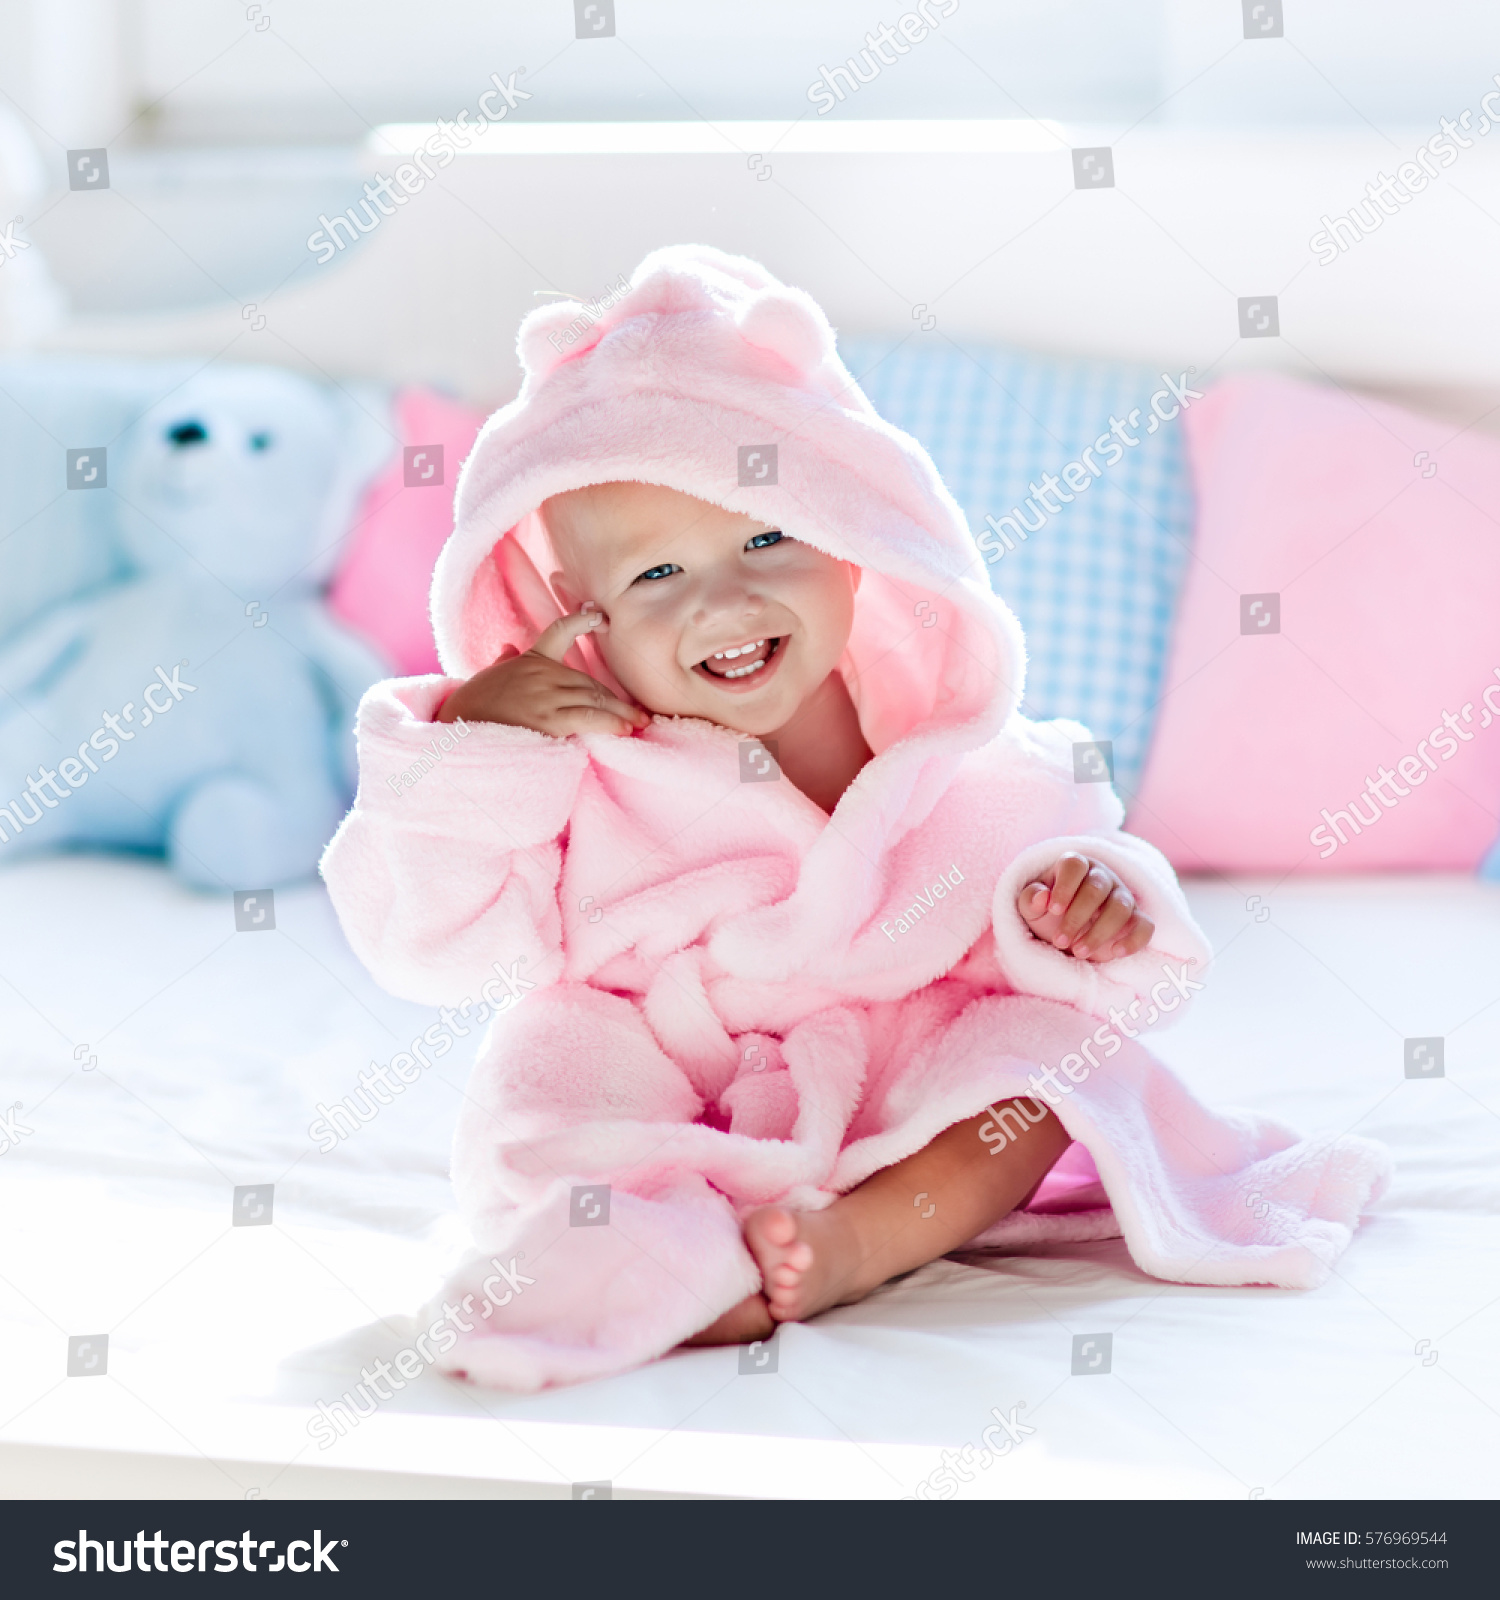 59387bff596 Cute happy laughing baby in soft bathrobe after bath playing on white bed  with blue and